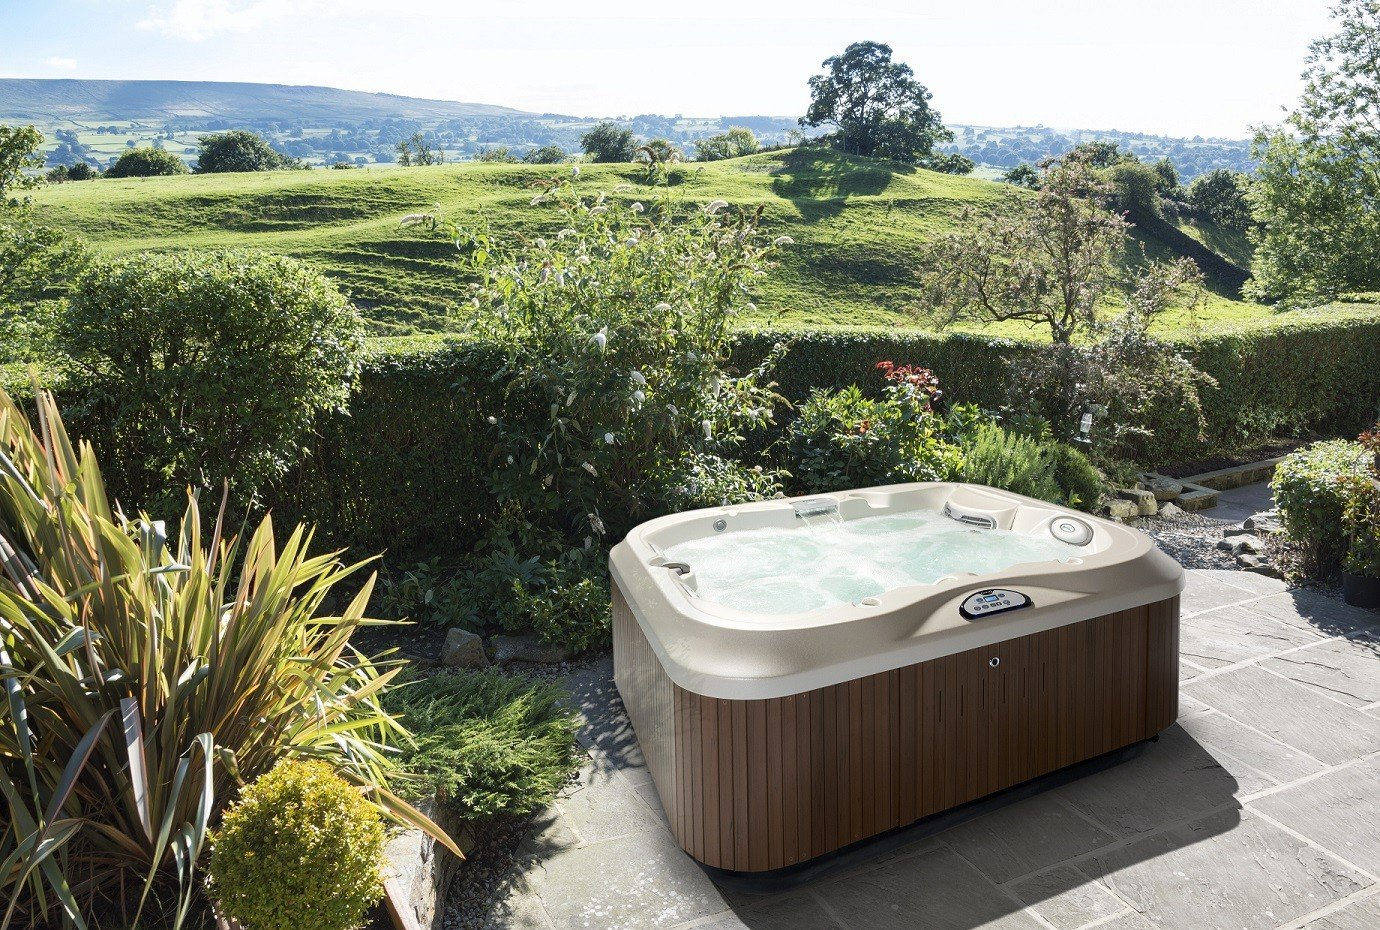 5 Creative Ideas For Adding More Privacy Around Your Hot Tub Hot Tubs Dfw Texas Hot Tub Company